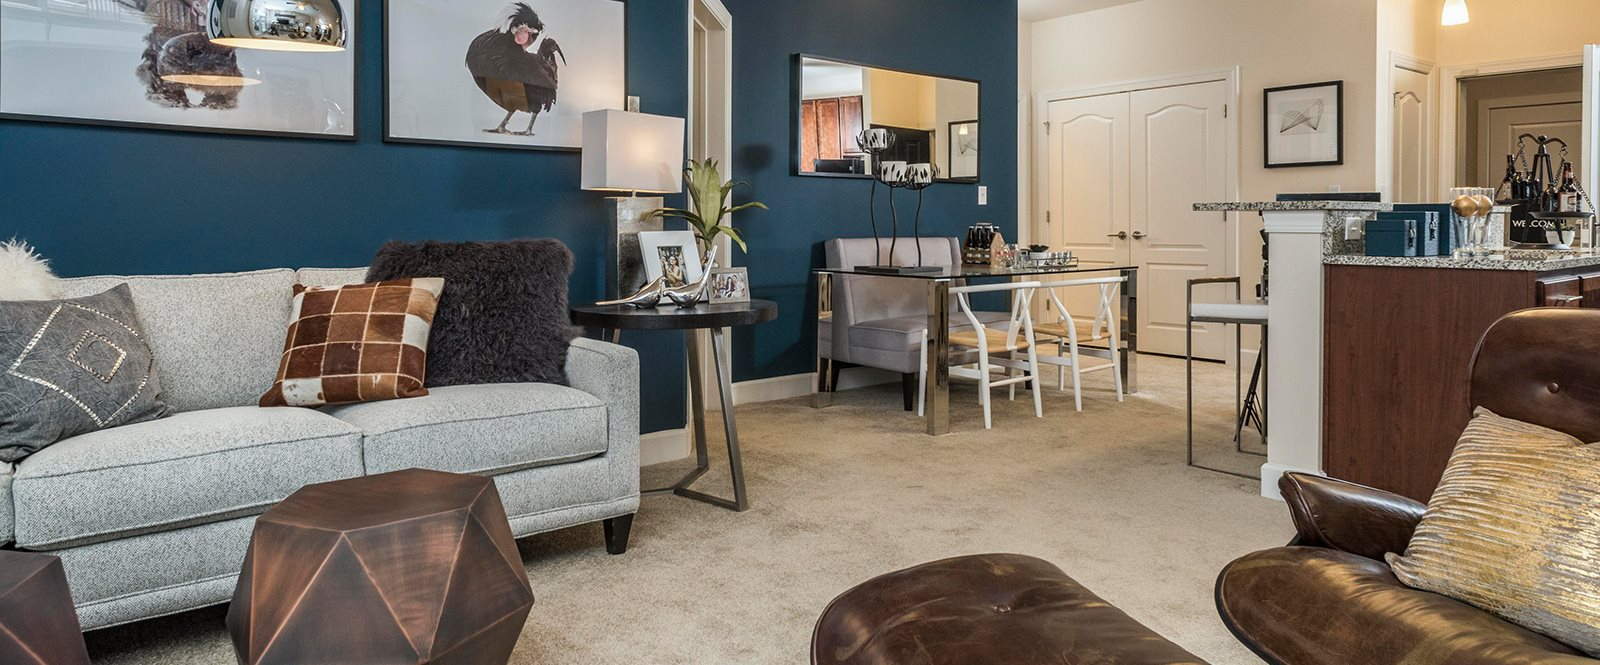 Fully Furnished Apartments at Abberly CenterPointe Apartment Homes, Midlothian, VA